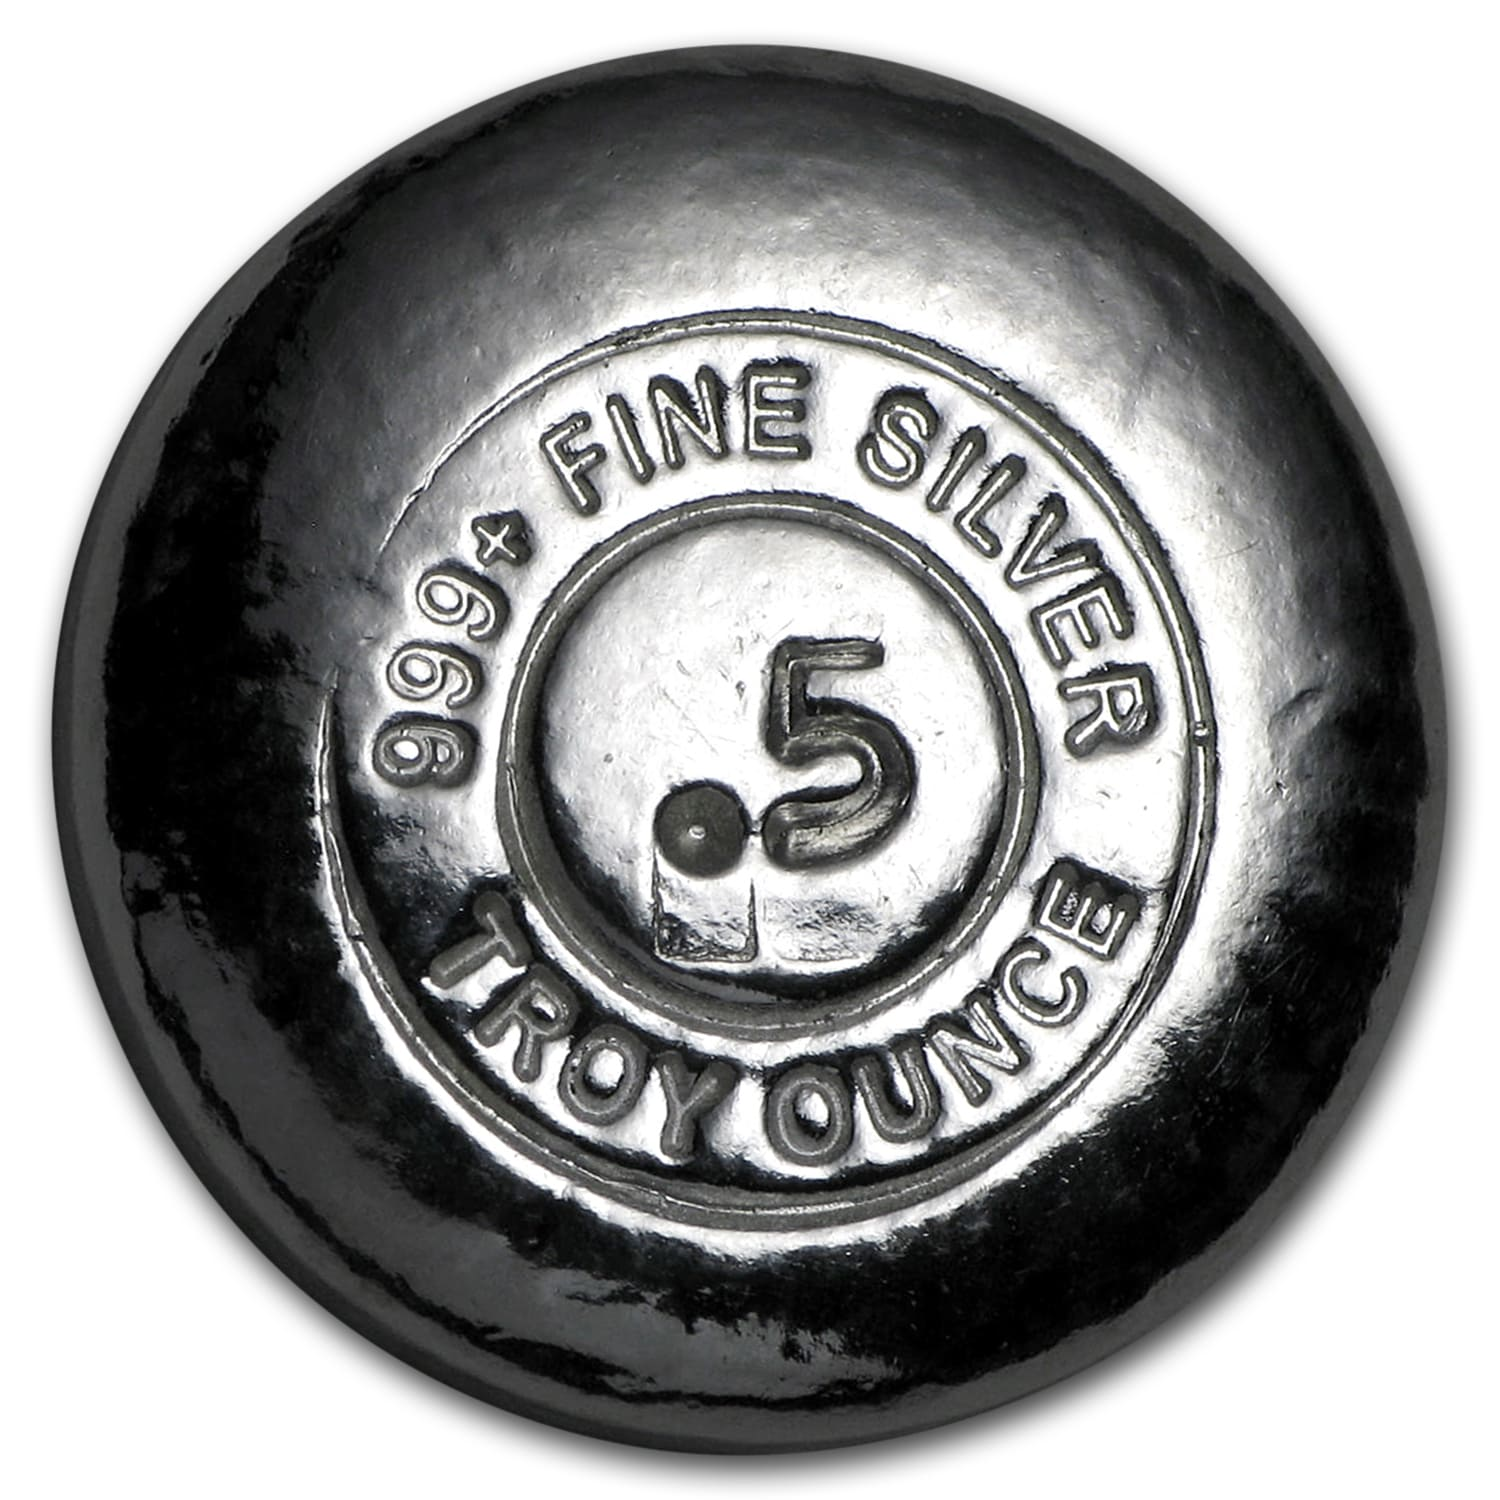 1/2 oz Silver Round - Yeager Poured Silver